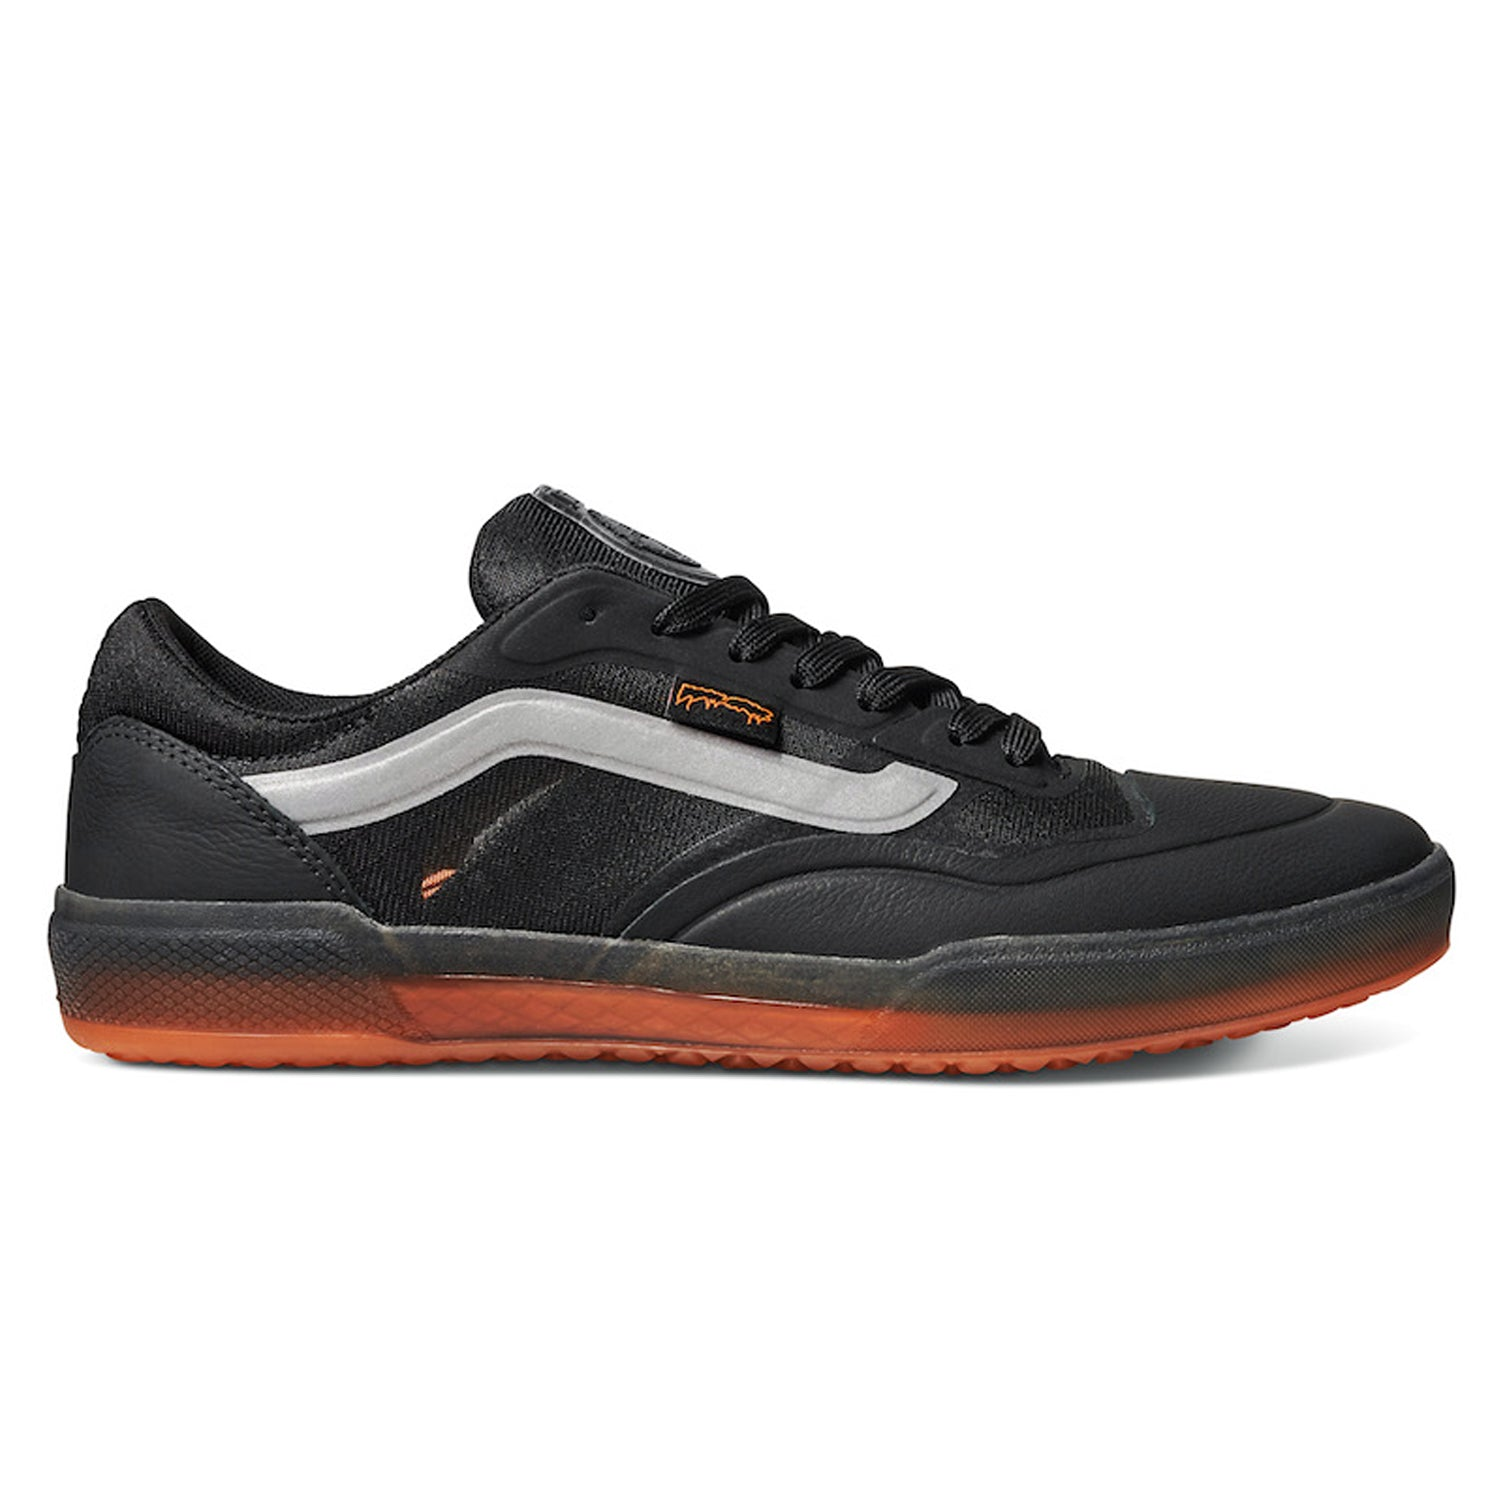 Vans AVE Pro LTD FA Black/Orange